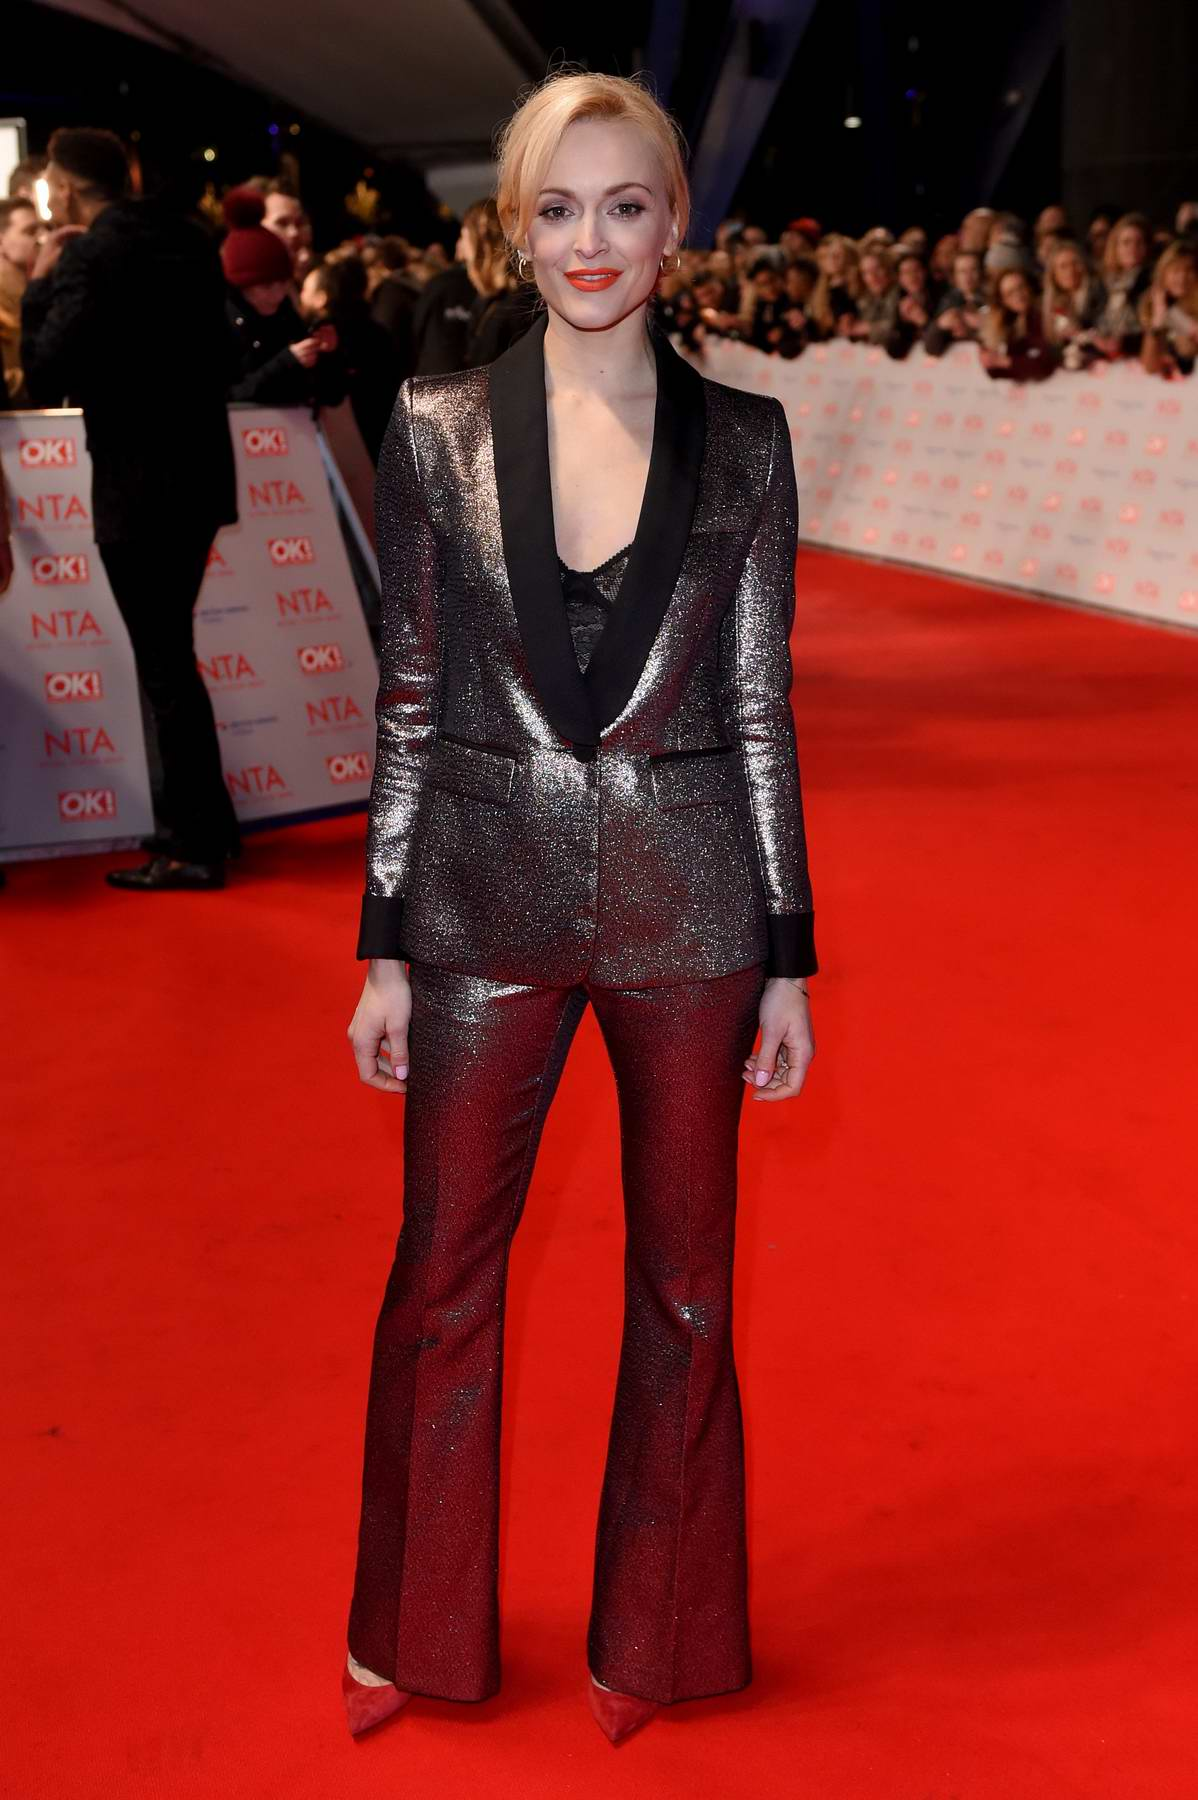 Fearne Cotton attends National Television Awards at The O2 Arena in London